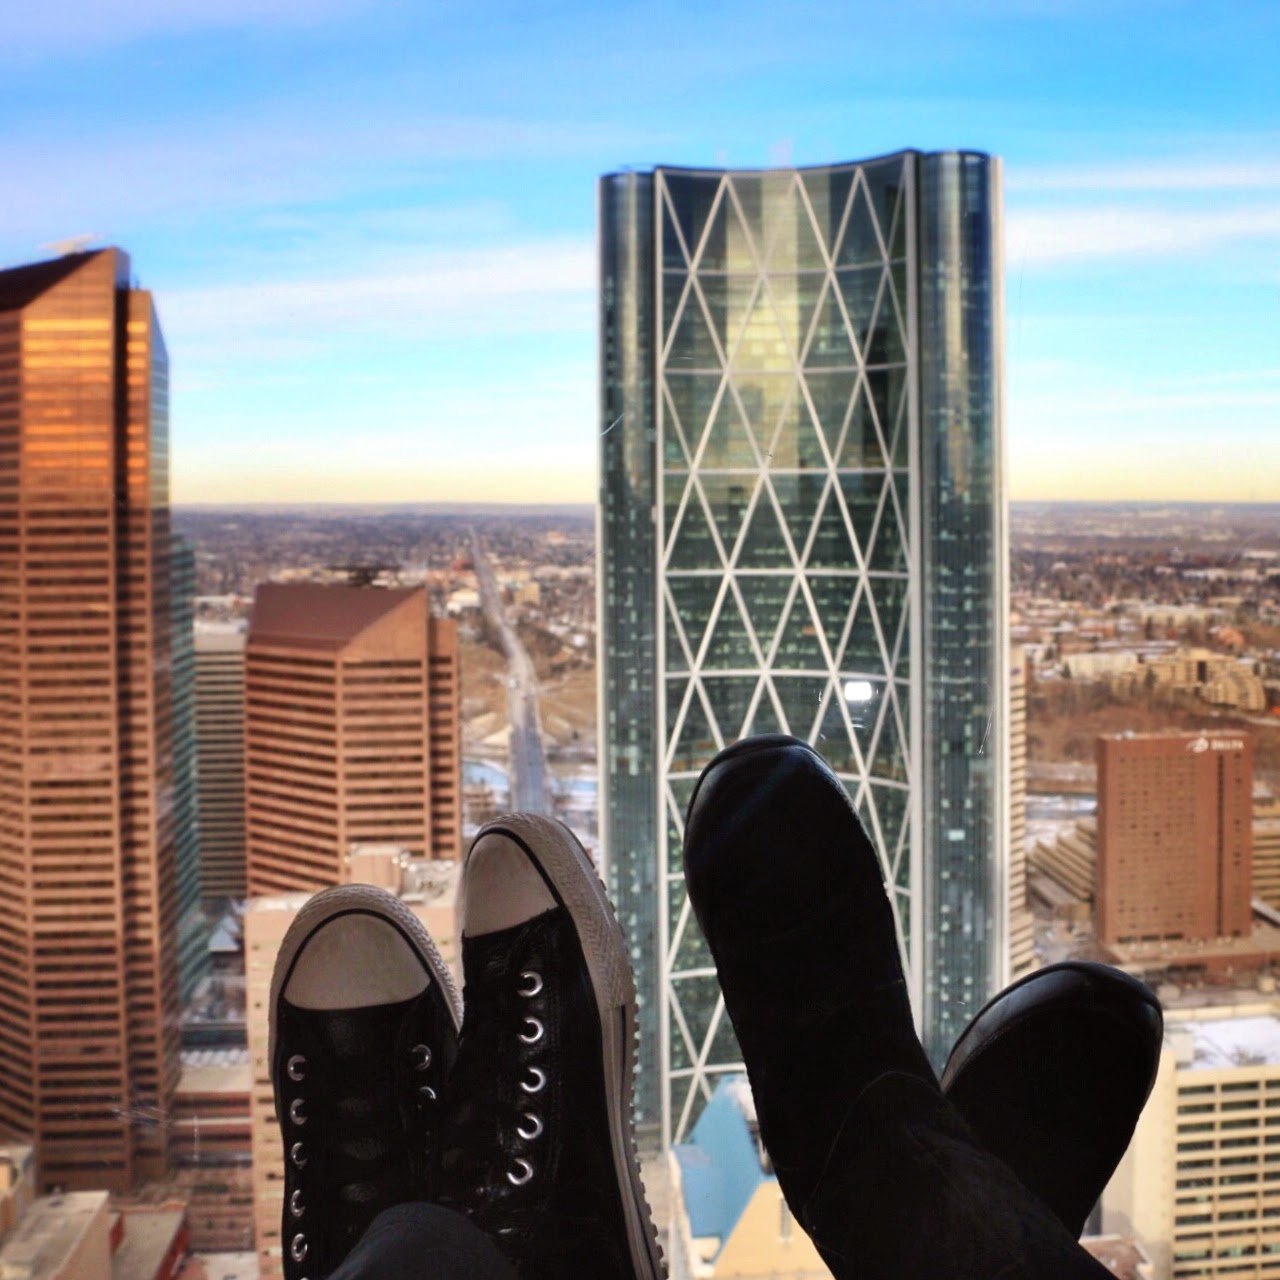 Calgary Towner in Alberta Canada by Jessica Mack, SweetDivergence